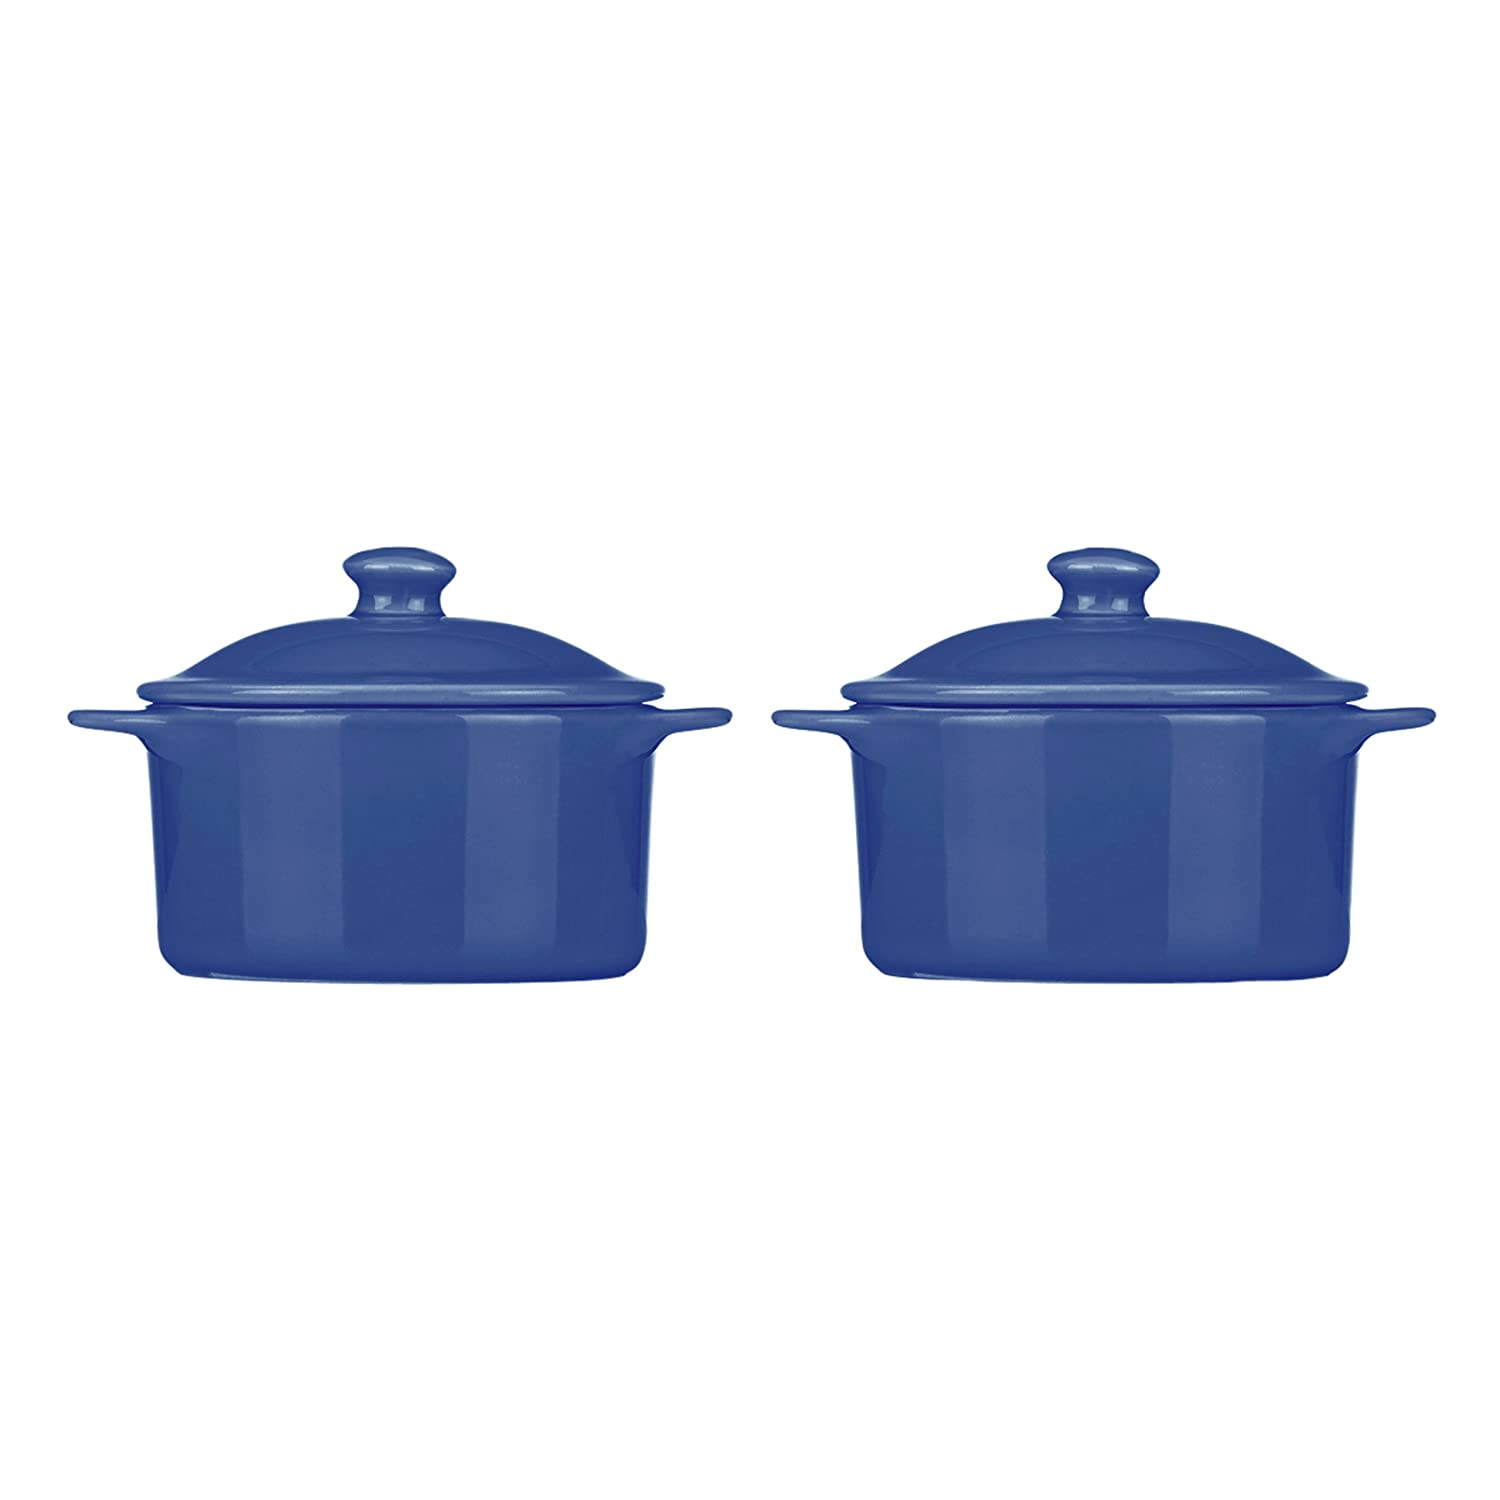 Mario Batali Stoneware Set of 2 Individual 10-Ounce Round Casseroles by Dansk, Cobalt